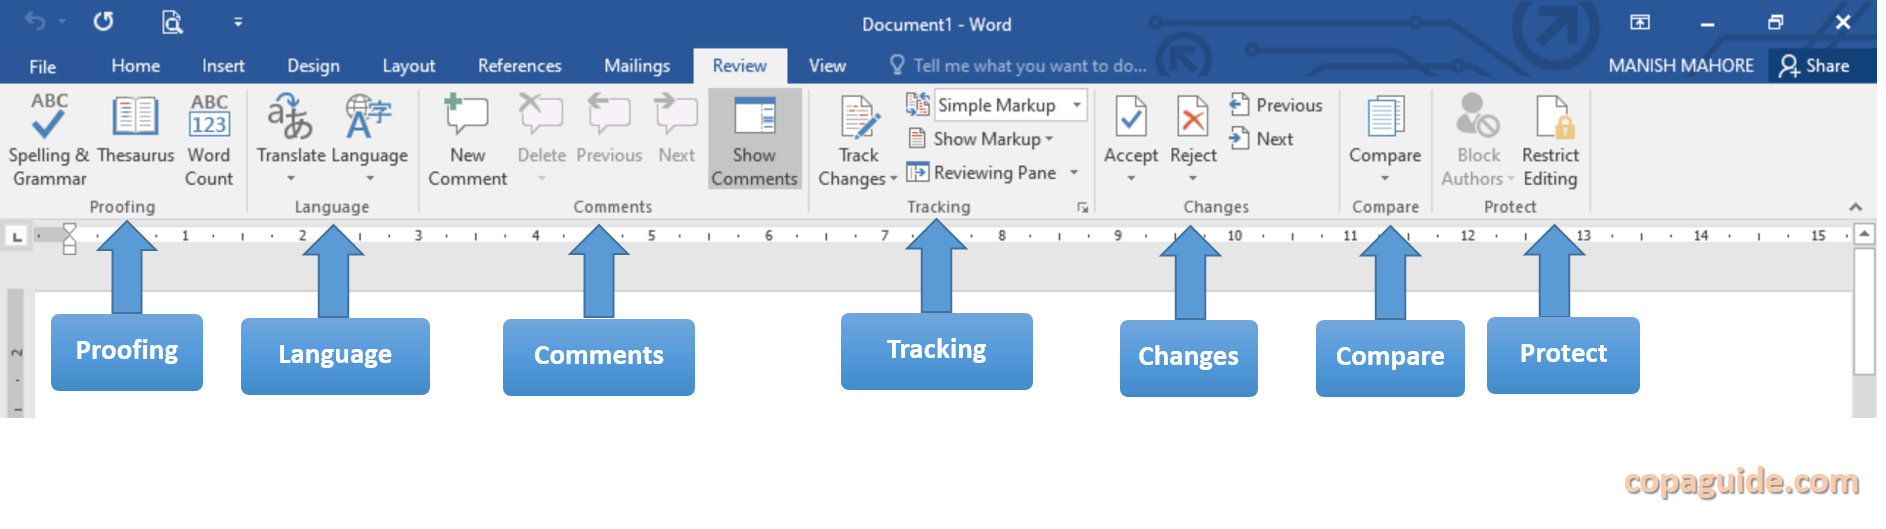 MS Word Review Tab Commands